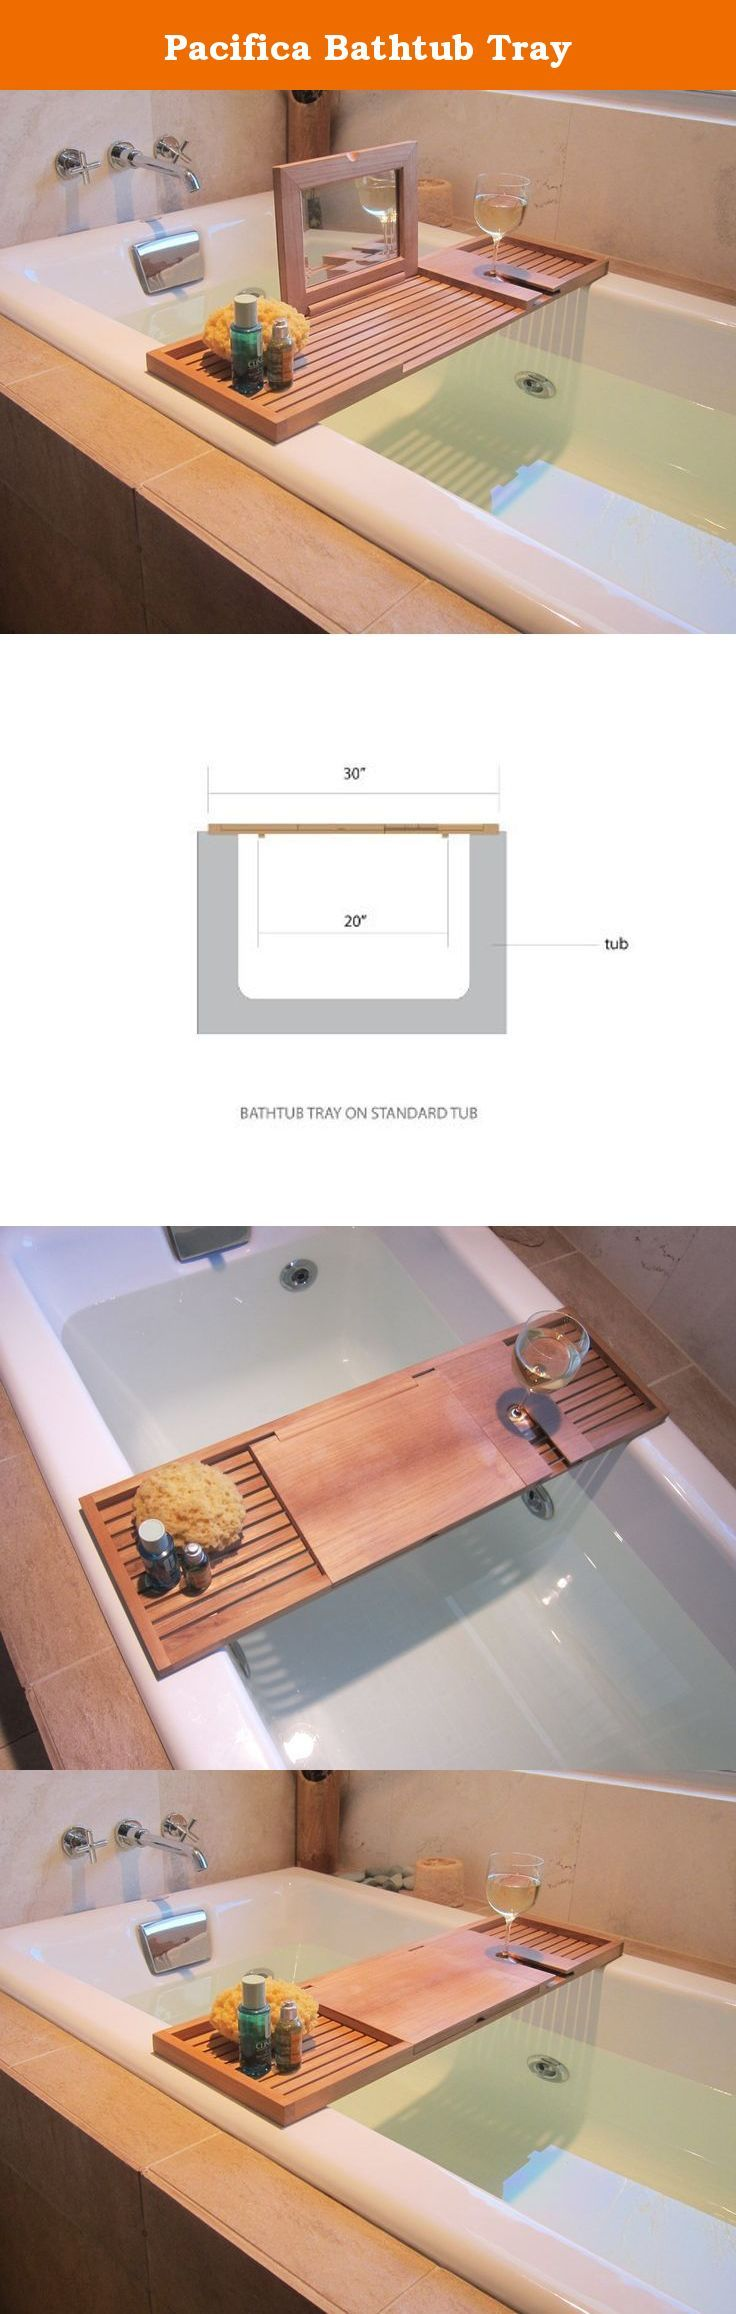 Pacifica Bathtub Tray. With its simple form and clean lines, the Pacifica Bathtub Tray offers one of the most versatile uses in bathroom accessories. Use the flat surface for writing or catching up on your novel. Ample space on both ends will hold anything from votive candles, your smartphone or any of the additional trappings of a luxury bath while soaking in the tub. The top flips back to reveal a mirror. A wineglass slot ensures your glass will not tip over. Built with 100% Grade A…